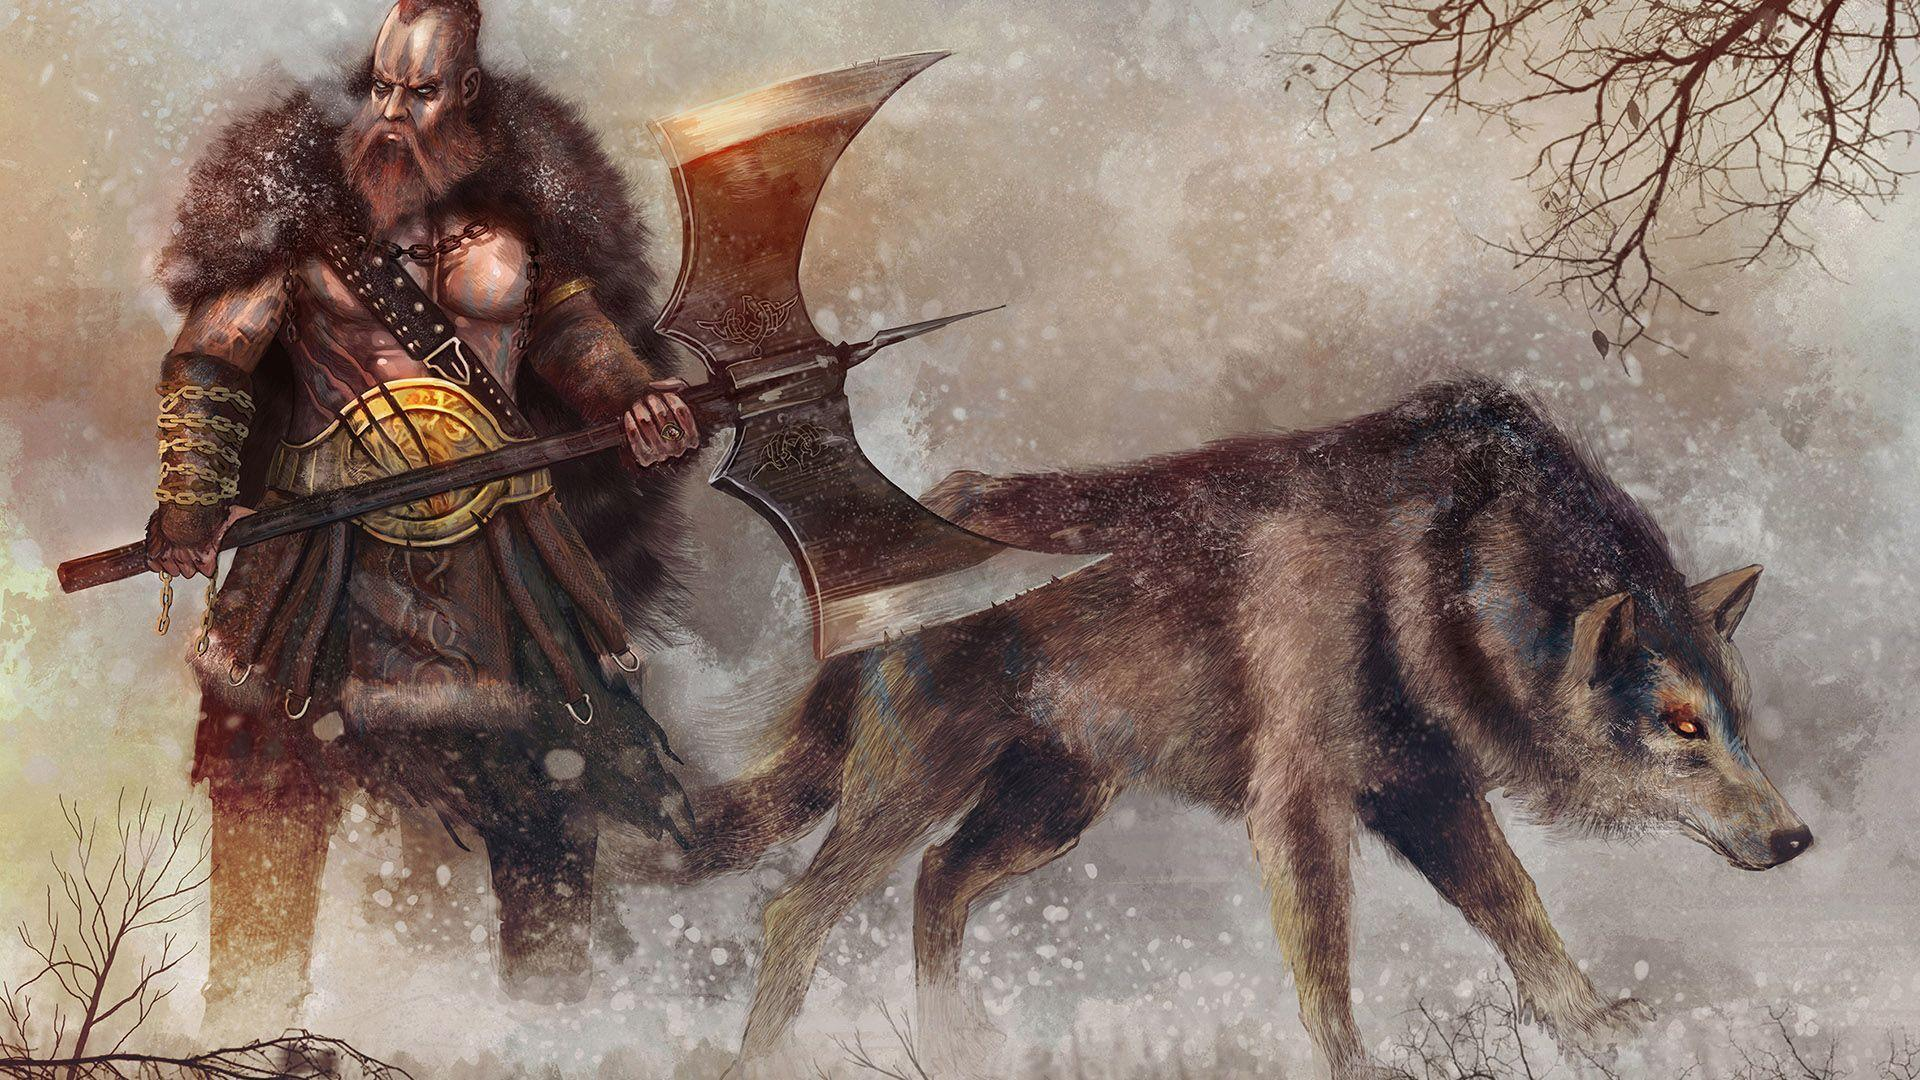 HD Warrior And His Wolf In The Snow Wallpaper Download